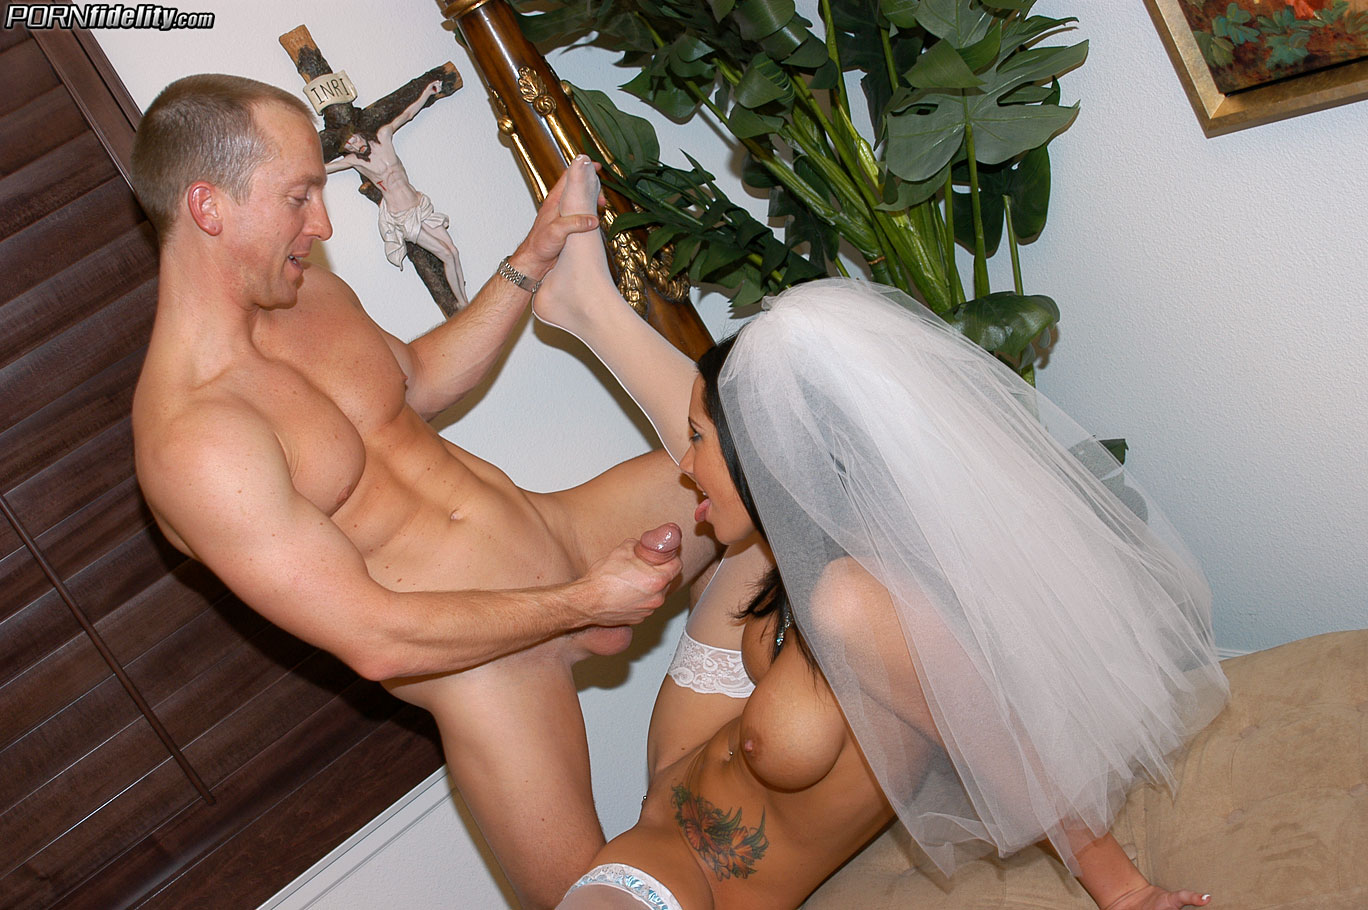 Dirty priest fucking pictures xxx video